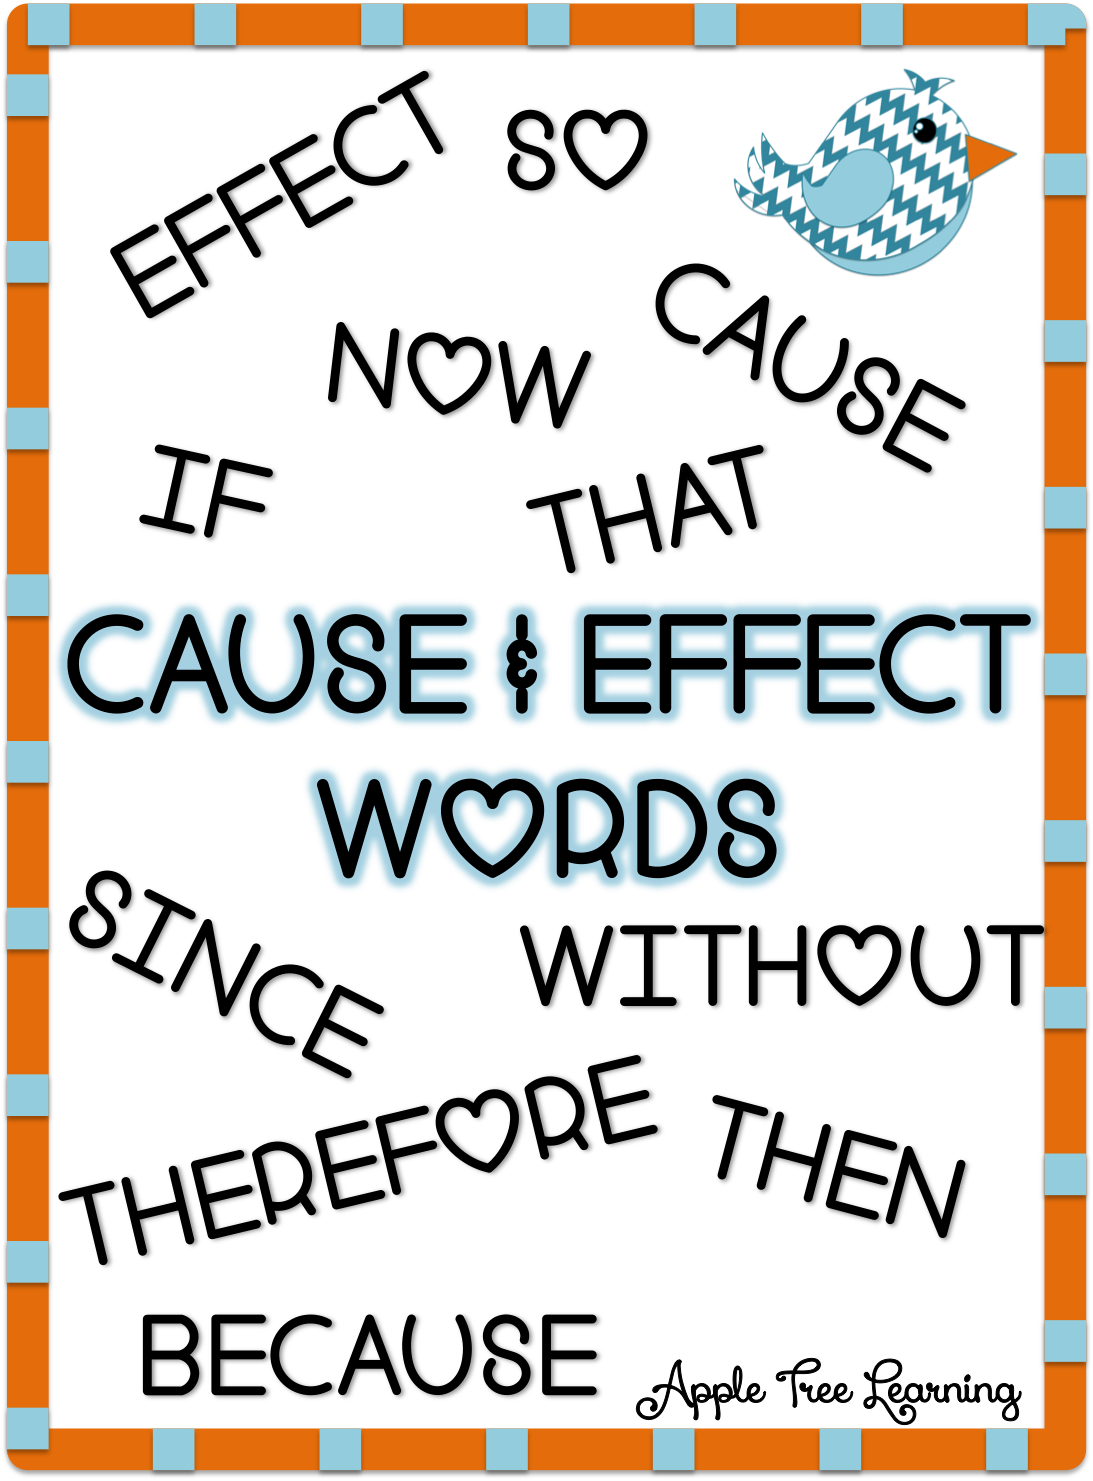 Cause & Effect words.